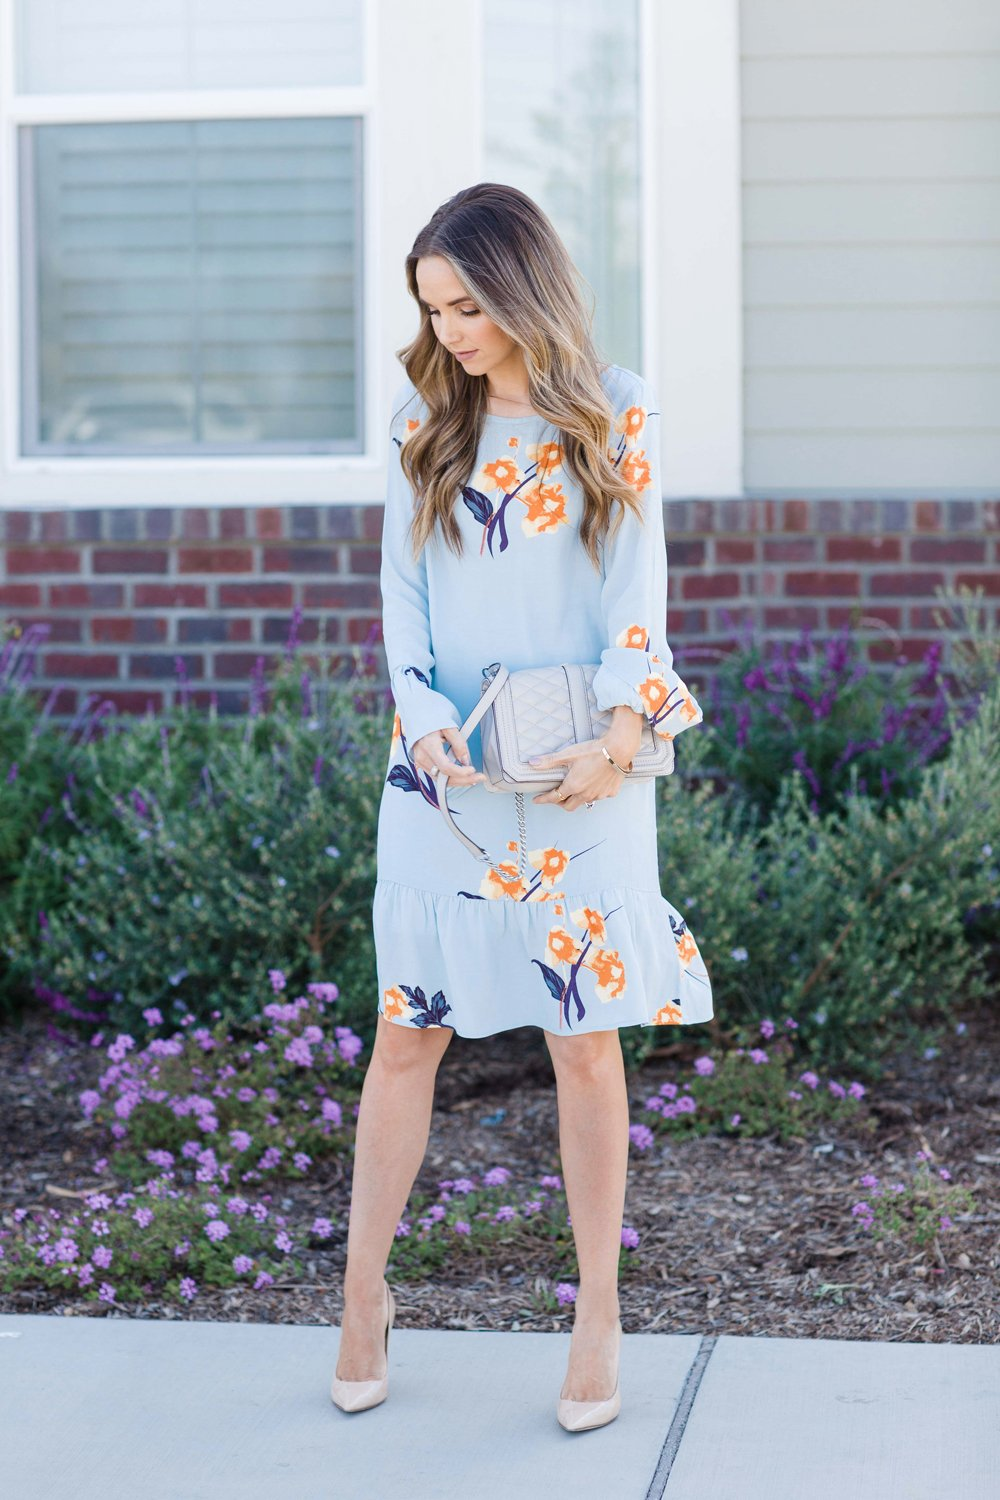 Merrick's Art Blue Floral Dress